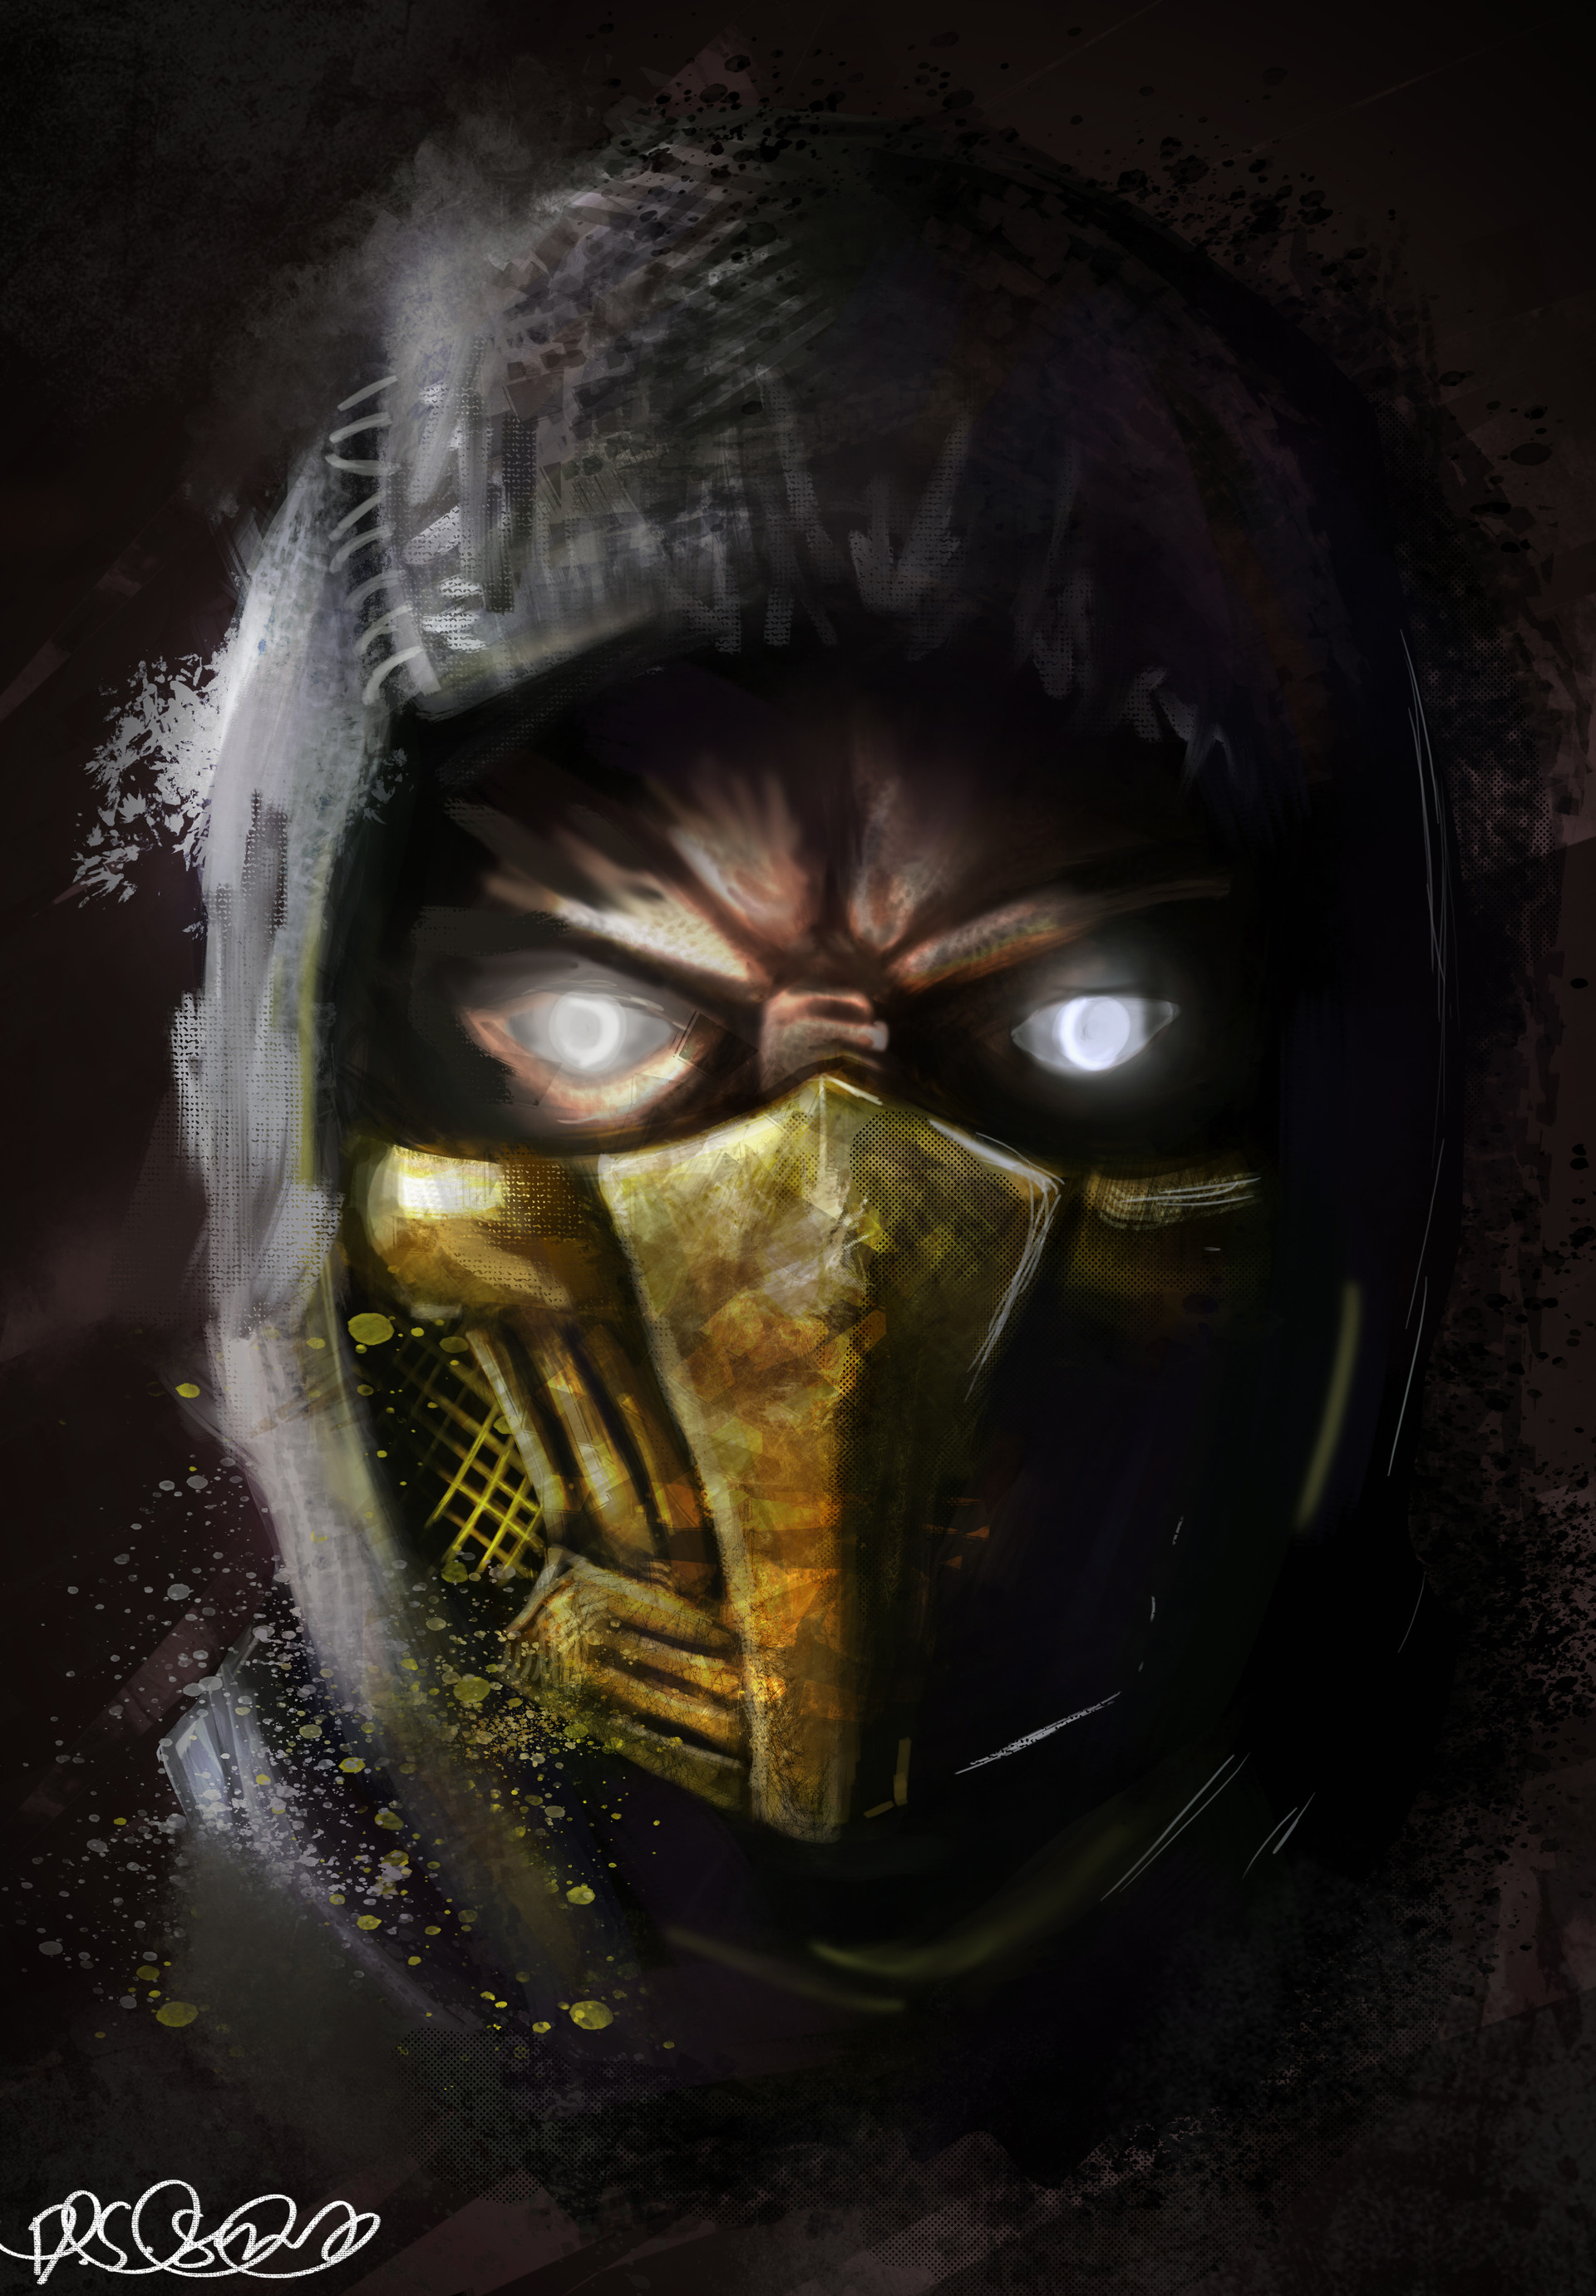 Scorpion Pics Mortal Kombat Posted By Christopher Thompson